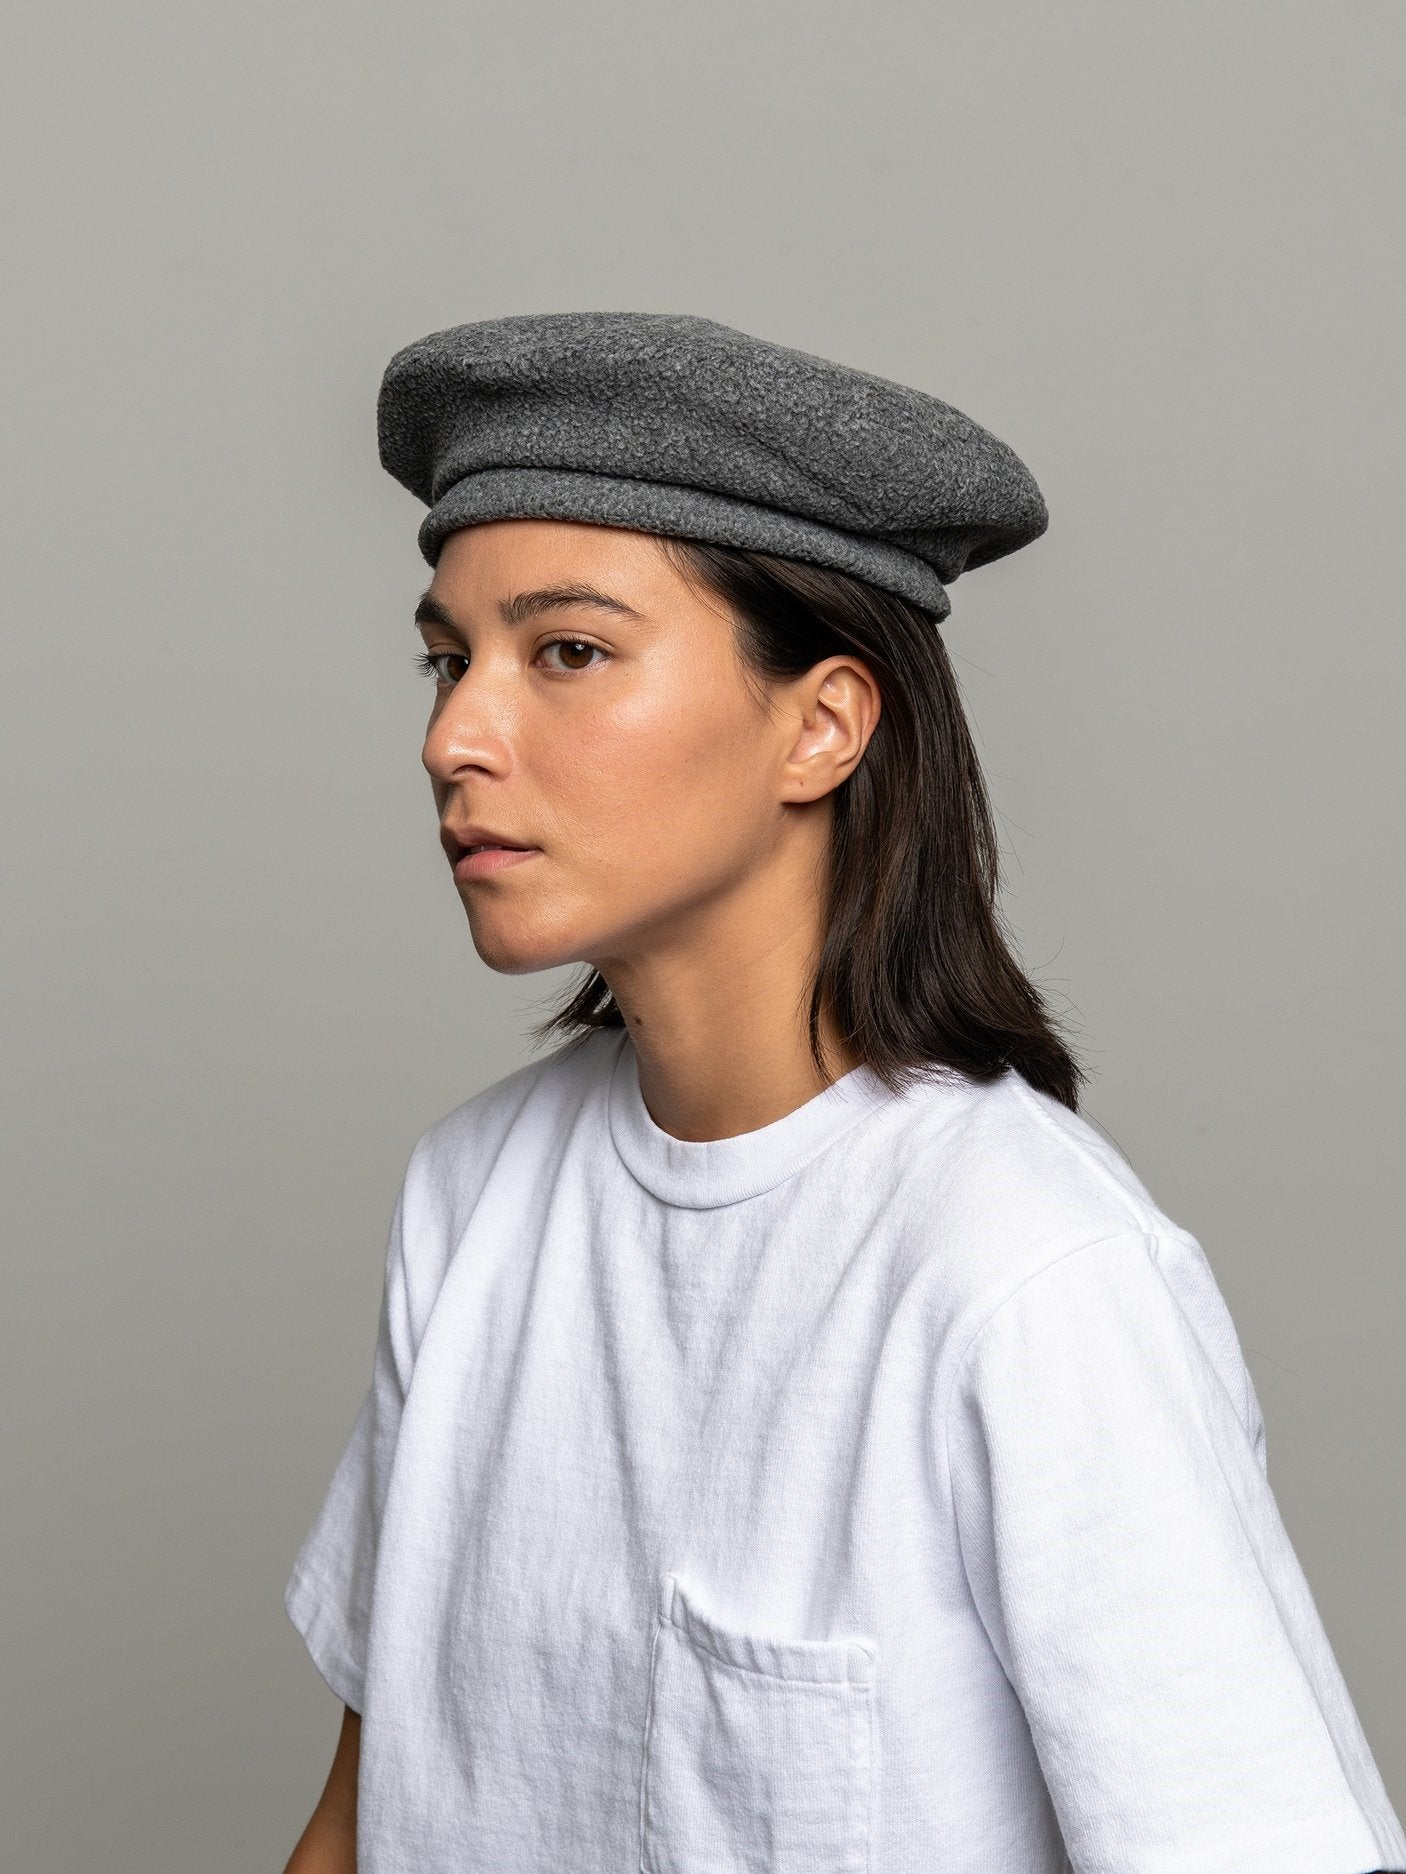 Namu Shop - paa Beret - Charcoal